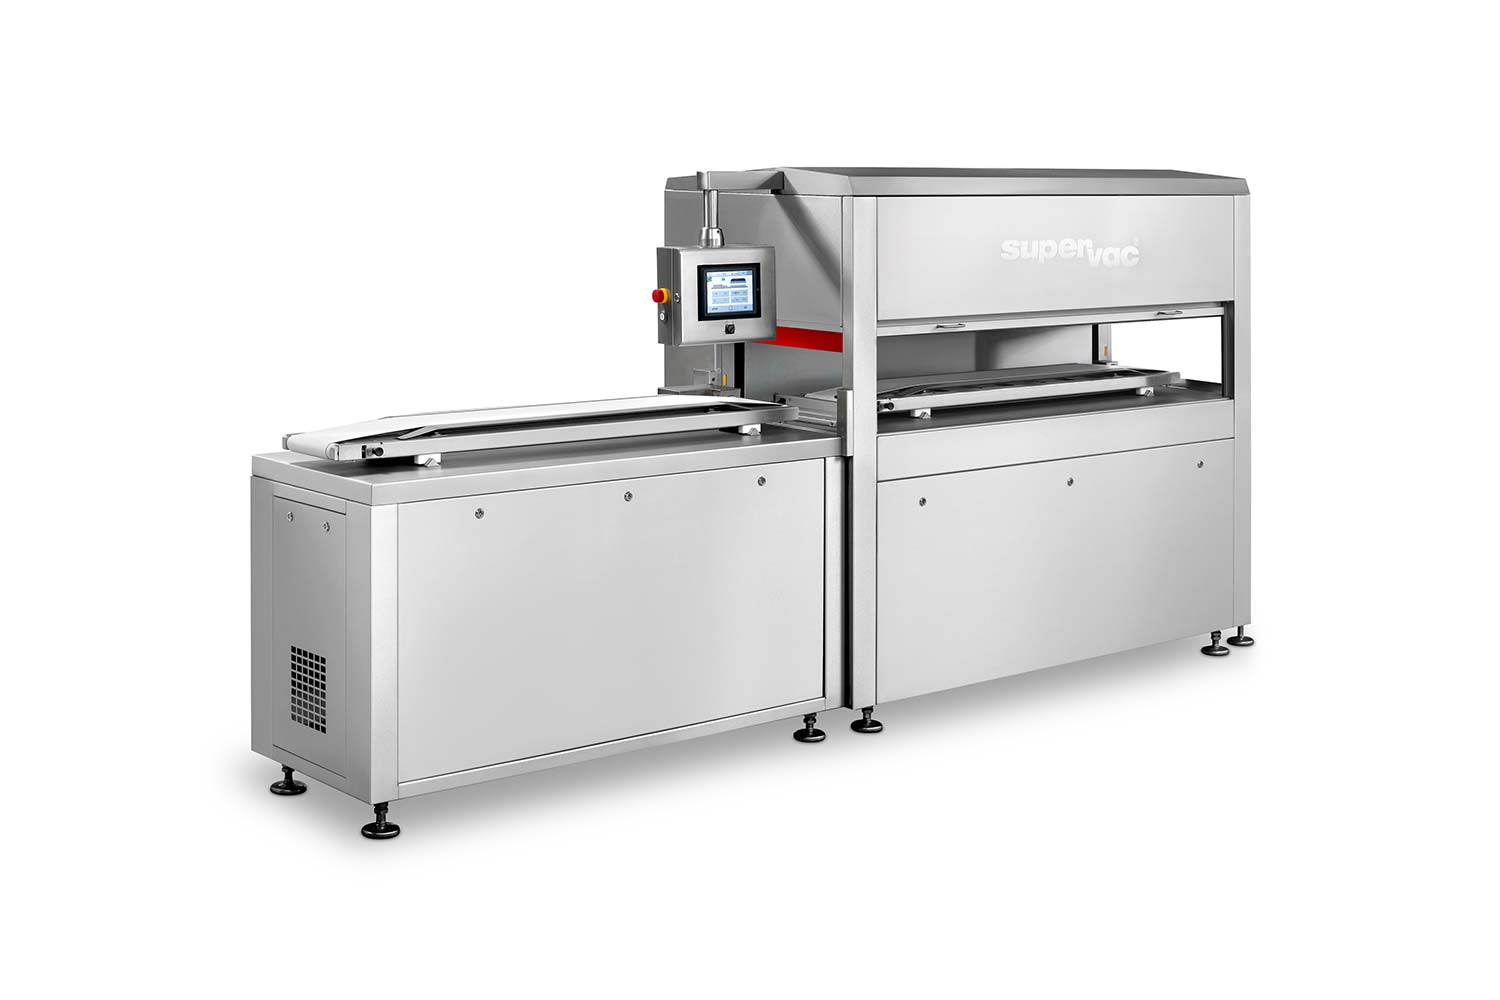 complete solutions for vacuum packaging